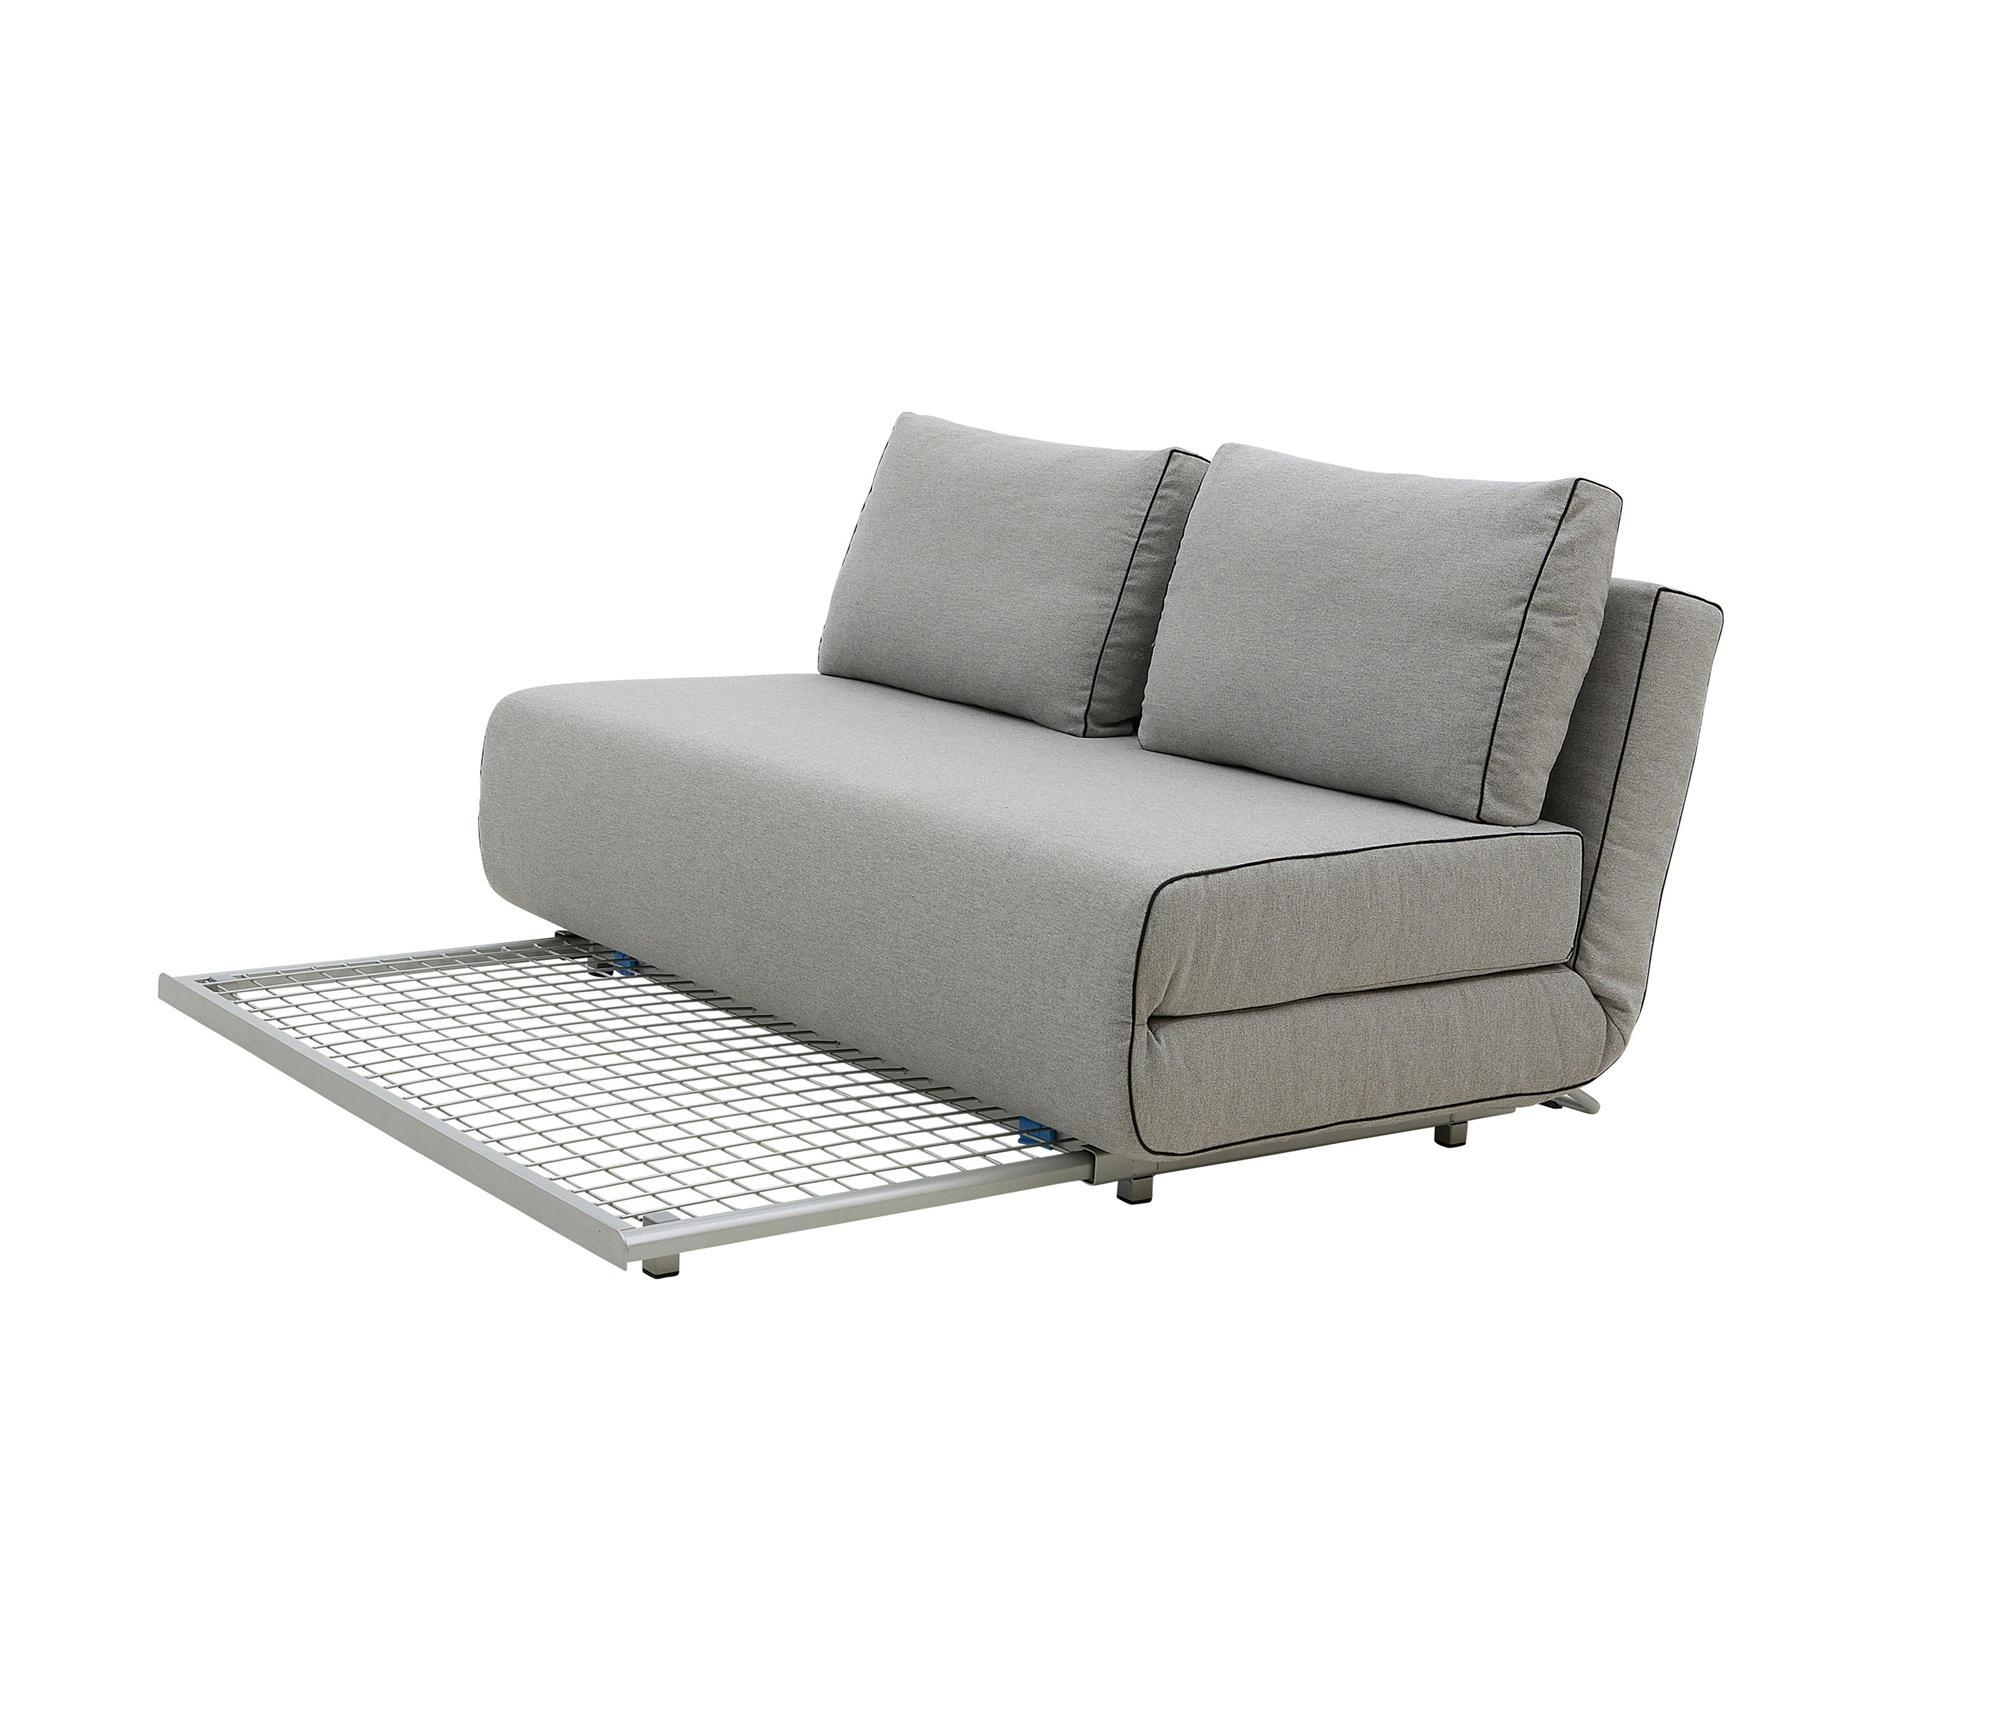 City Sofa – Sofa Beds From Softline A/s | Architonic Intended For City Sofa Beds (View 19 of 20)